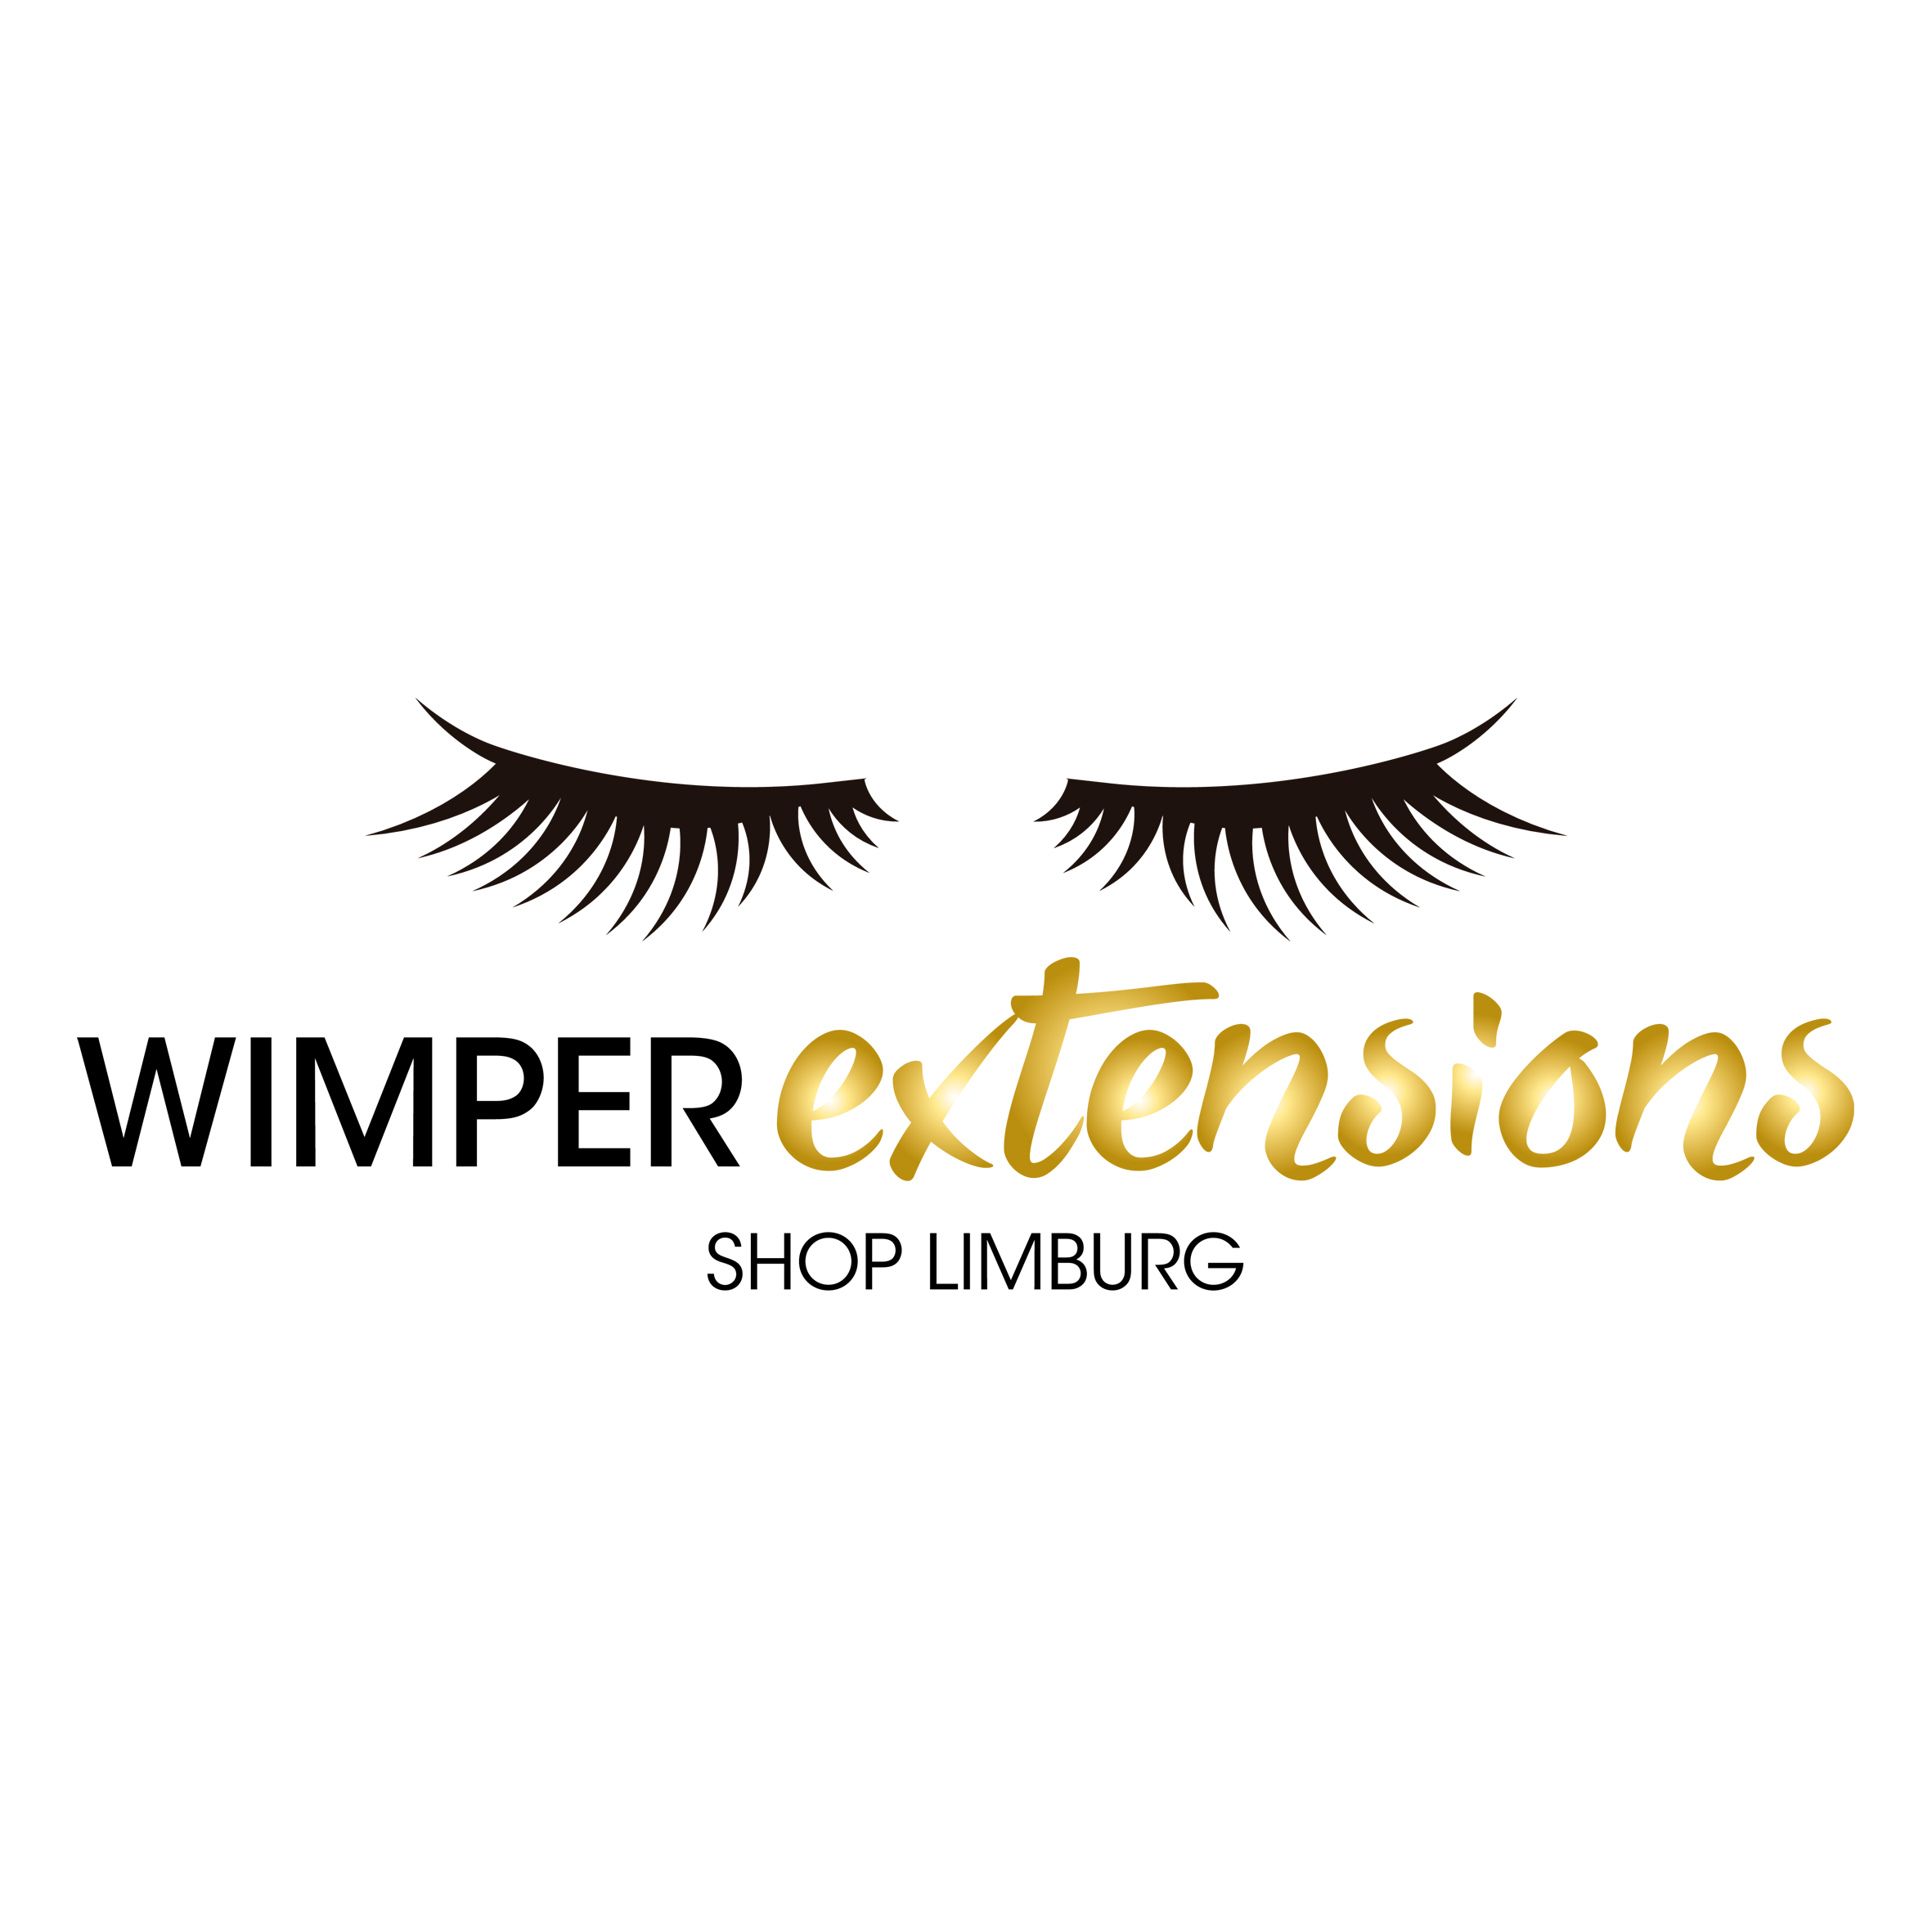 wimperextensions-shop-limburg